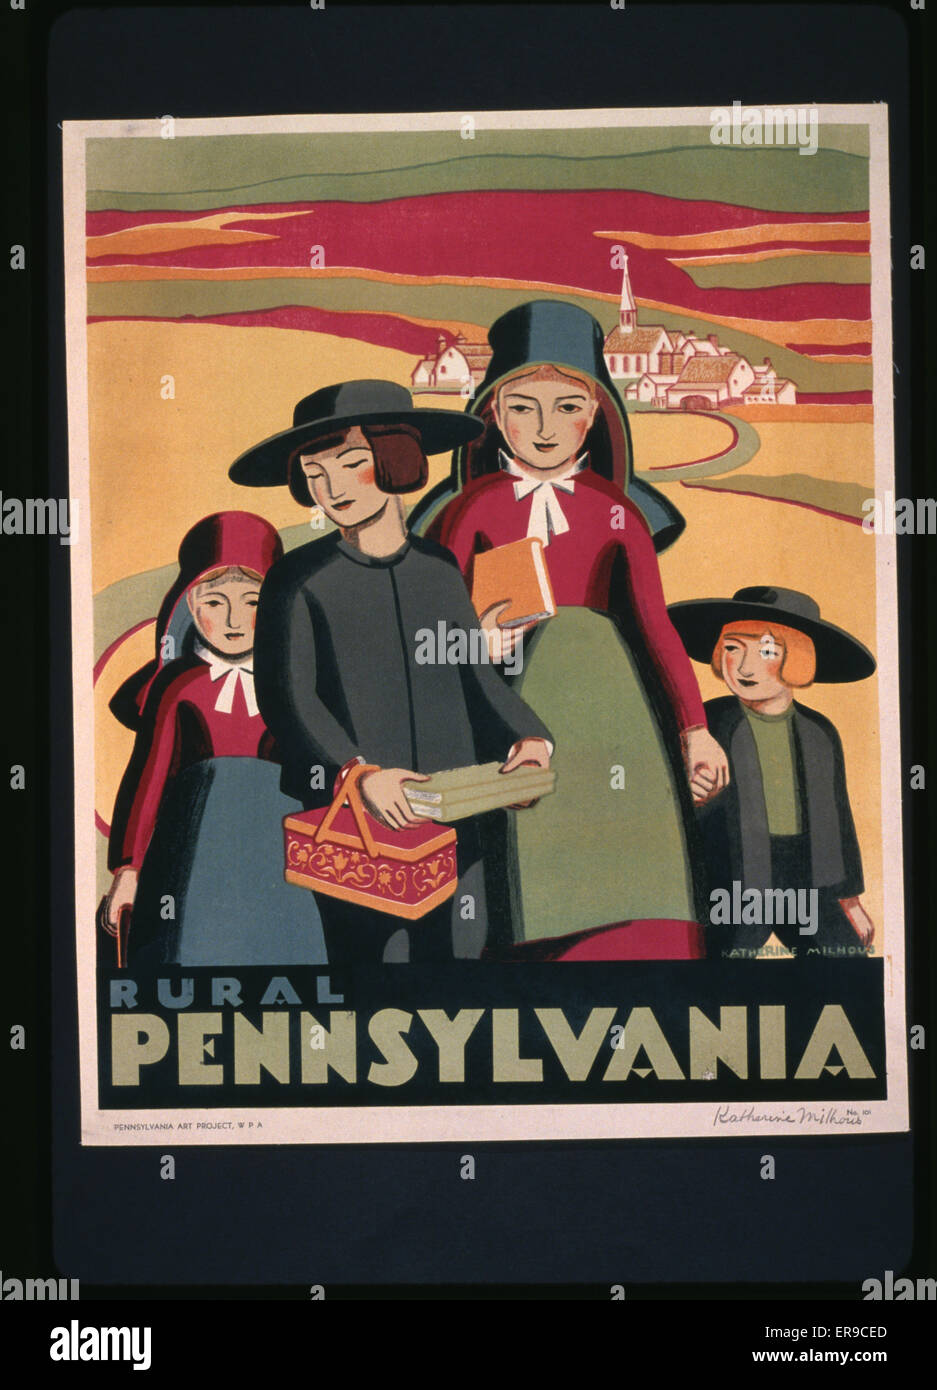 Rural Pennsylvania. Poster promoting Pennsylvania, showing children from a religious community. Date between 1936 - Stock Image